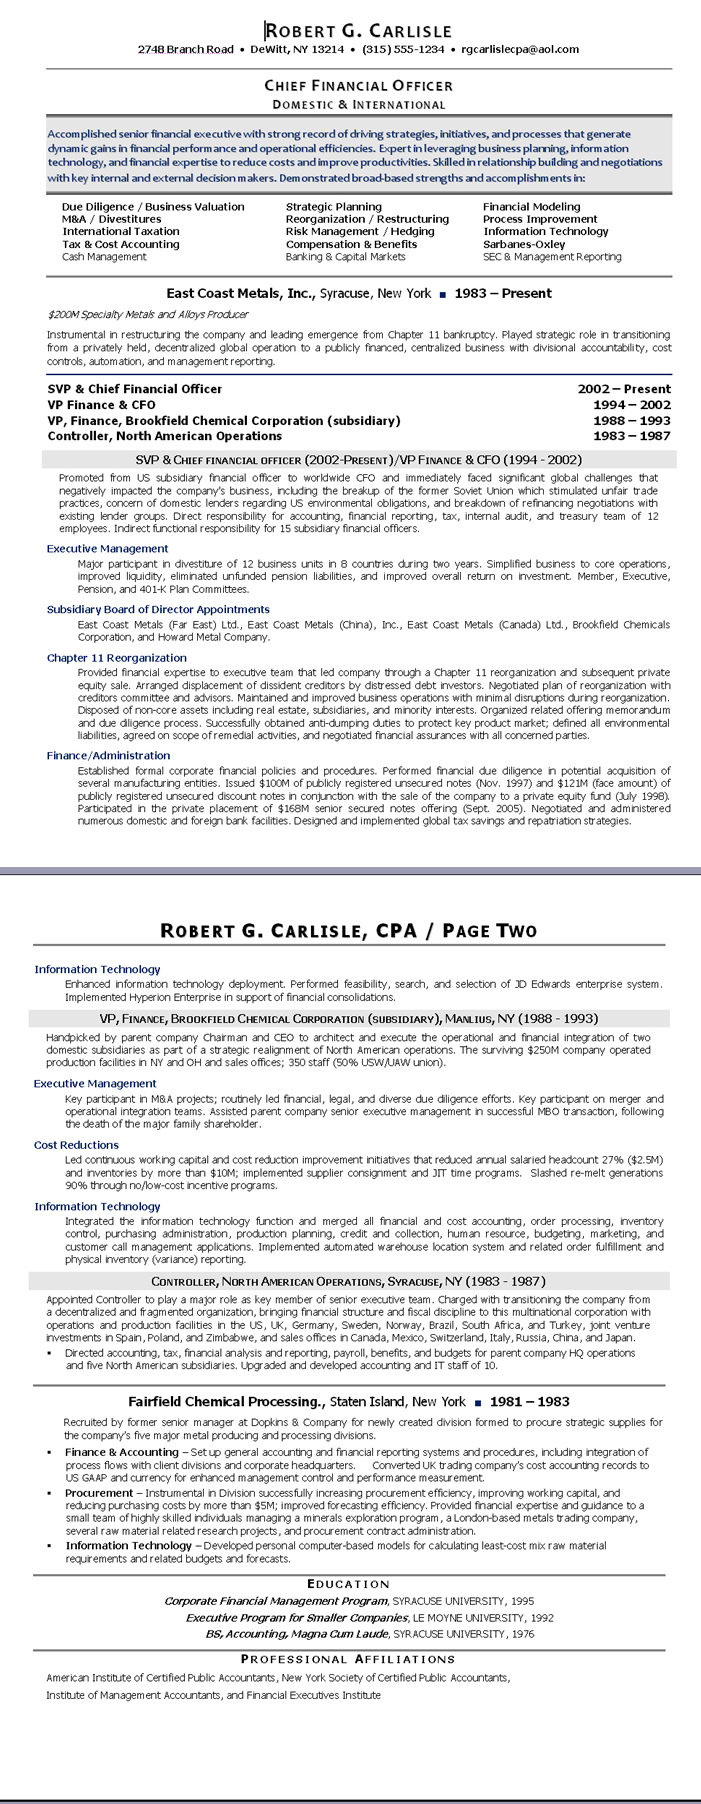 Sample Résumé: Chief Financial Officer (After) | Certified Resume ...